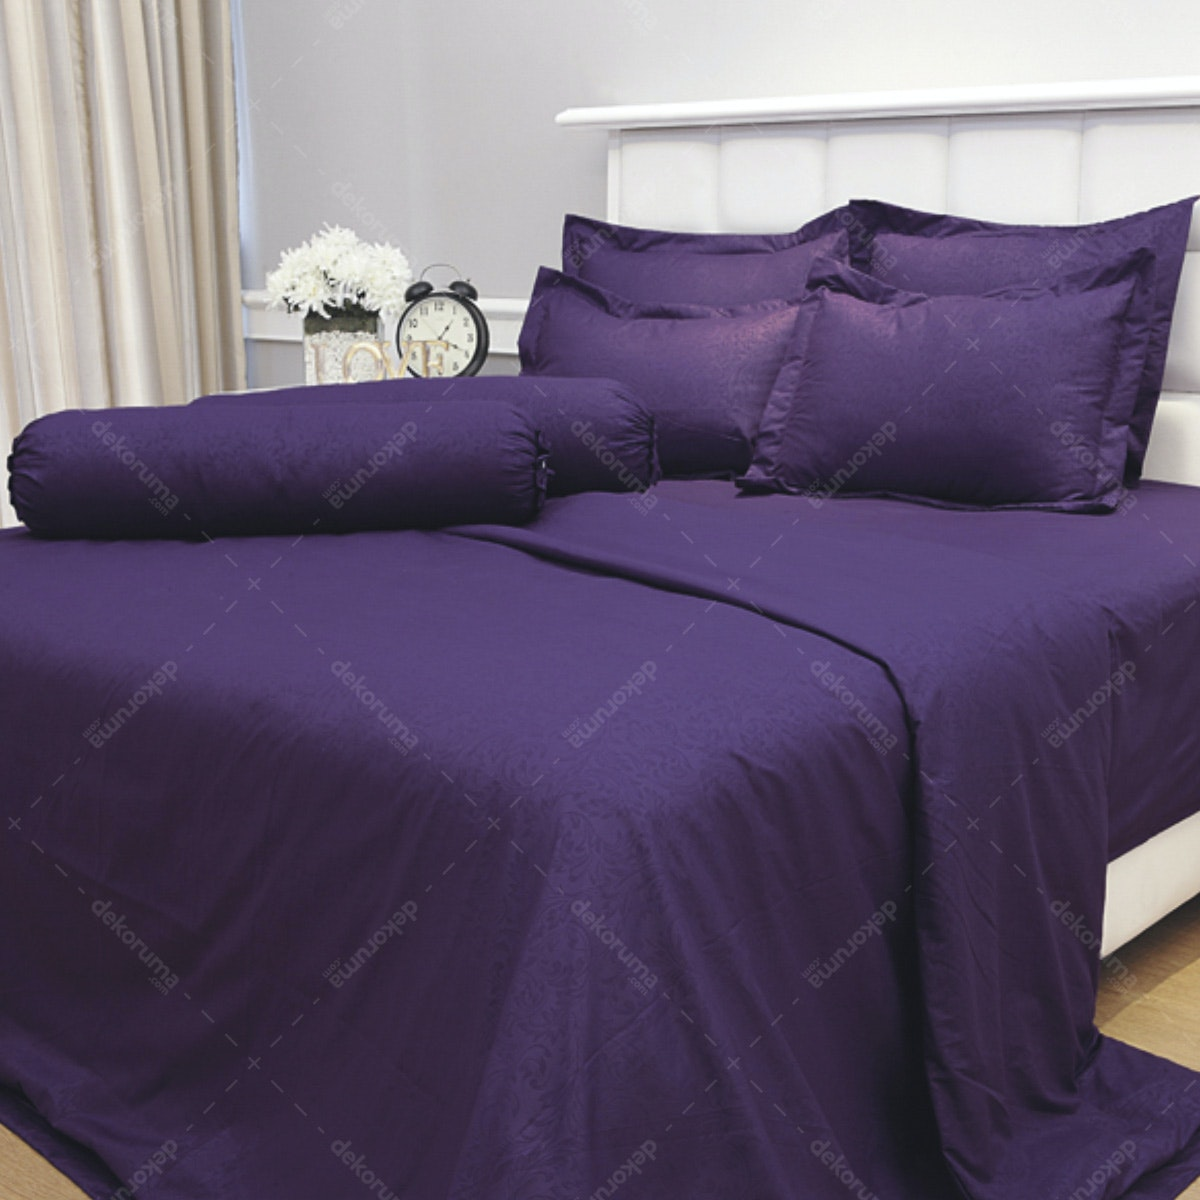 Vallery Quincy Bed Cover Dark Purple BC 245x225cm